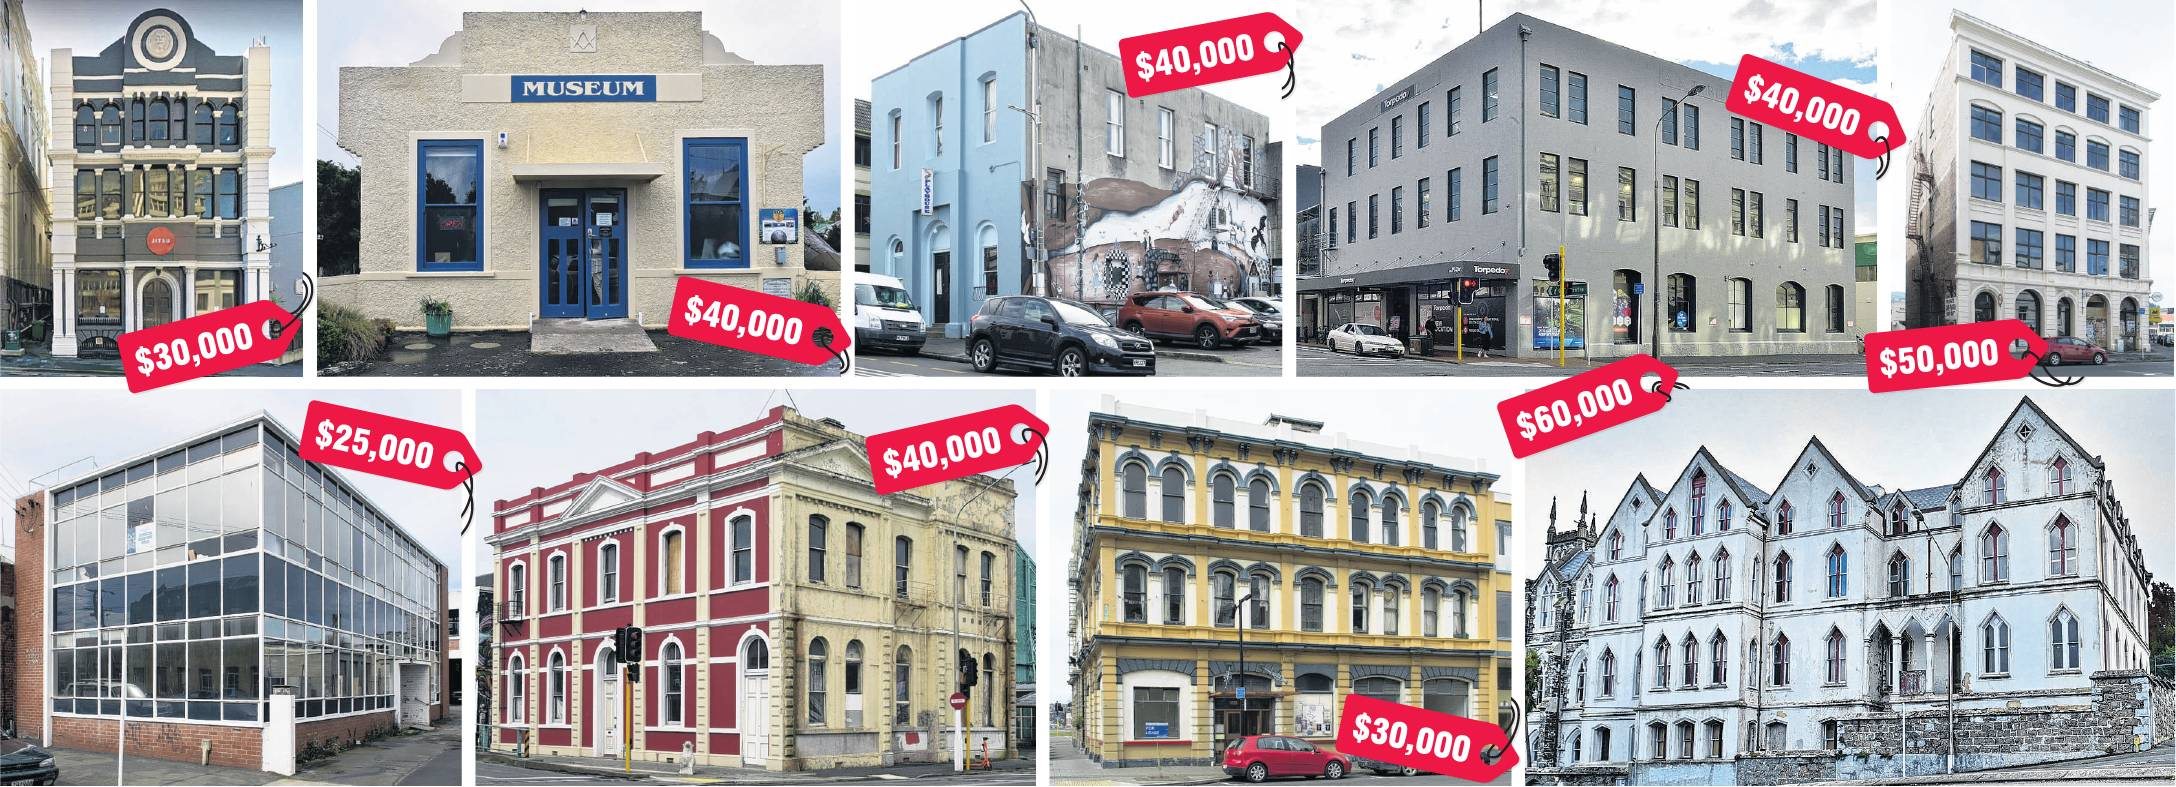 Top row, from left: Taimex Building, Middlemarch Museum, Playhouse Theatre, A&T Burt Ltd, McVickar's Building; bottom row from left: Waterfront Industry Commission Building, Otago Education Board Offices, Gillies Street and Hislop Building, St Dominic's P